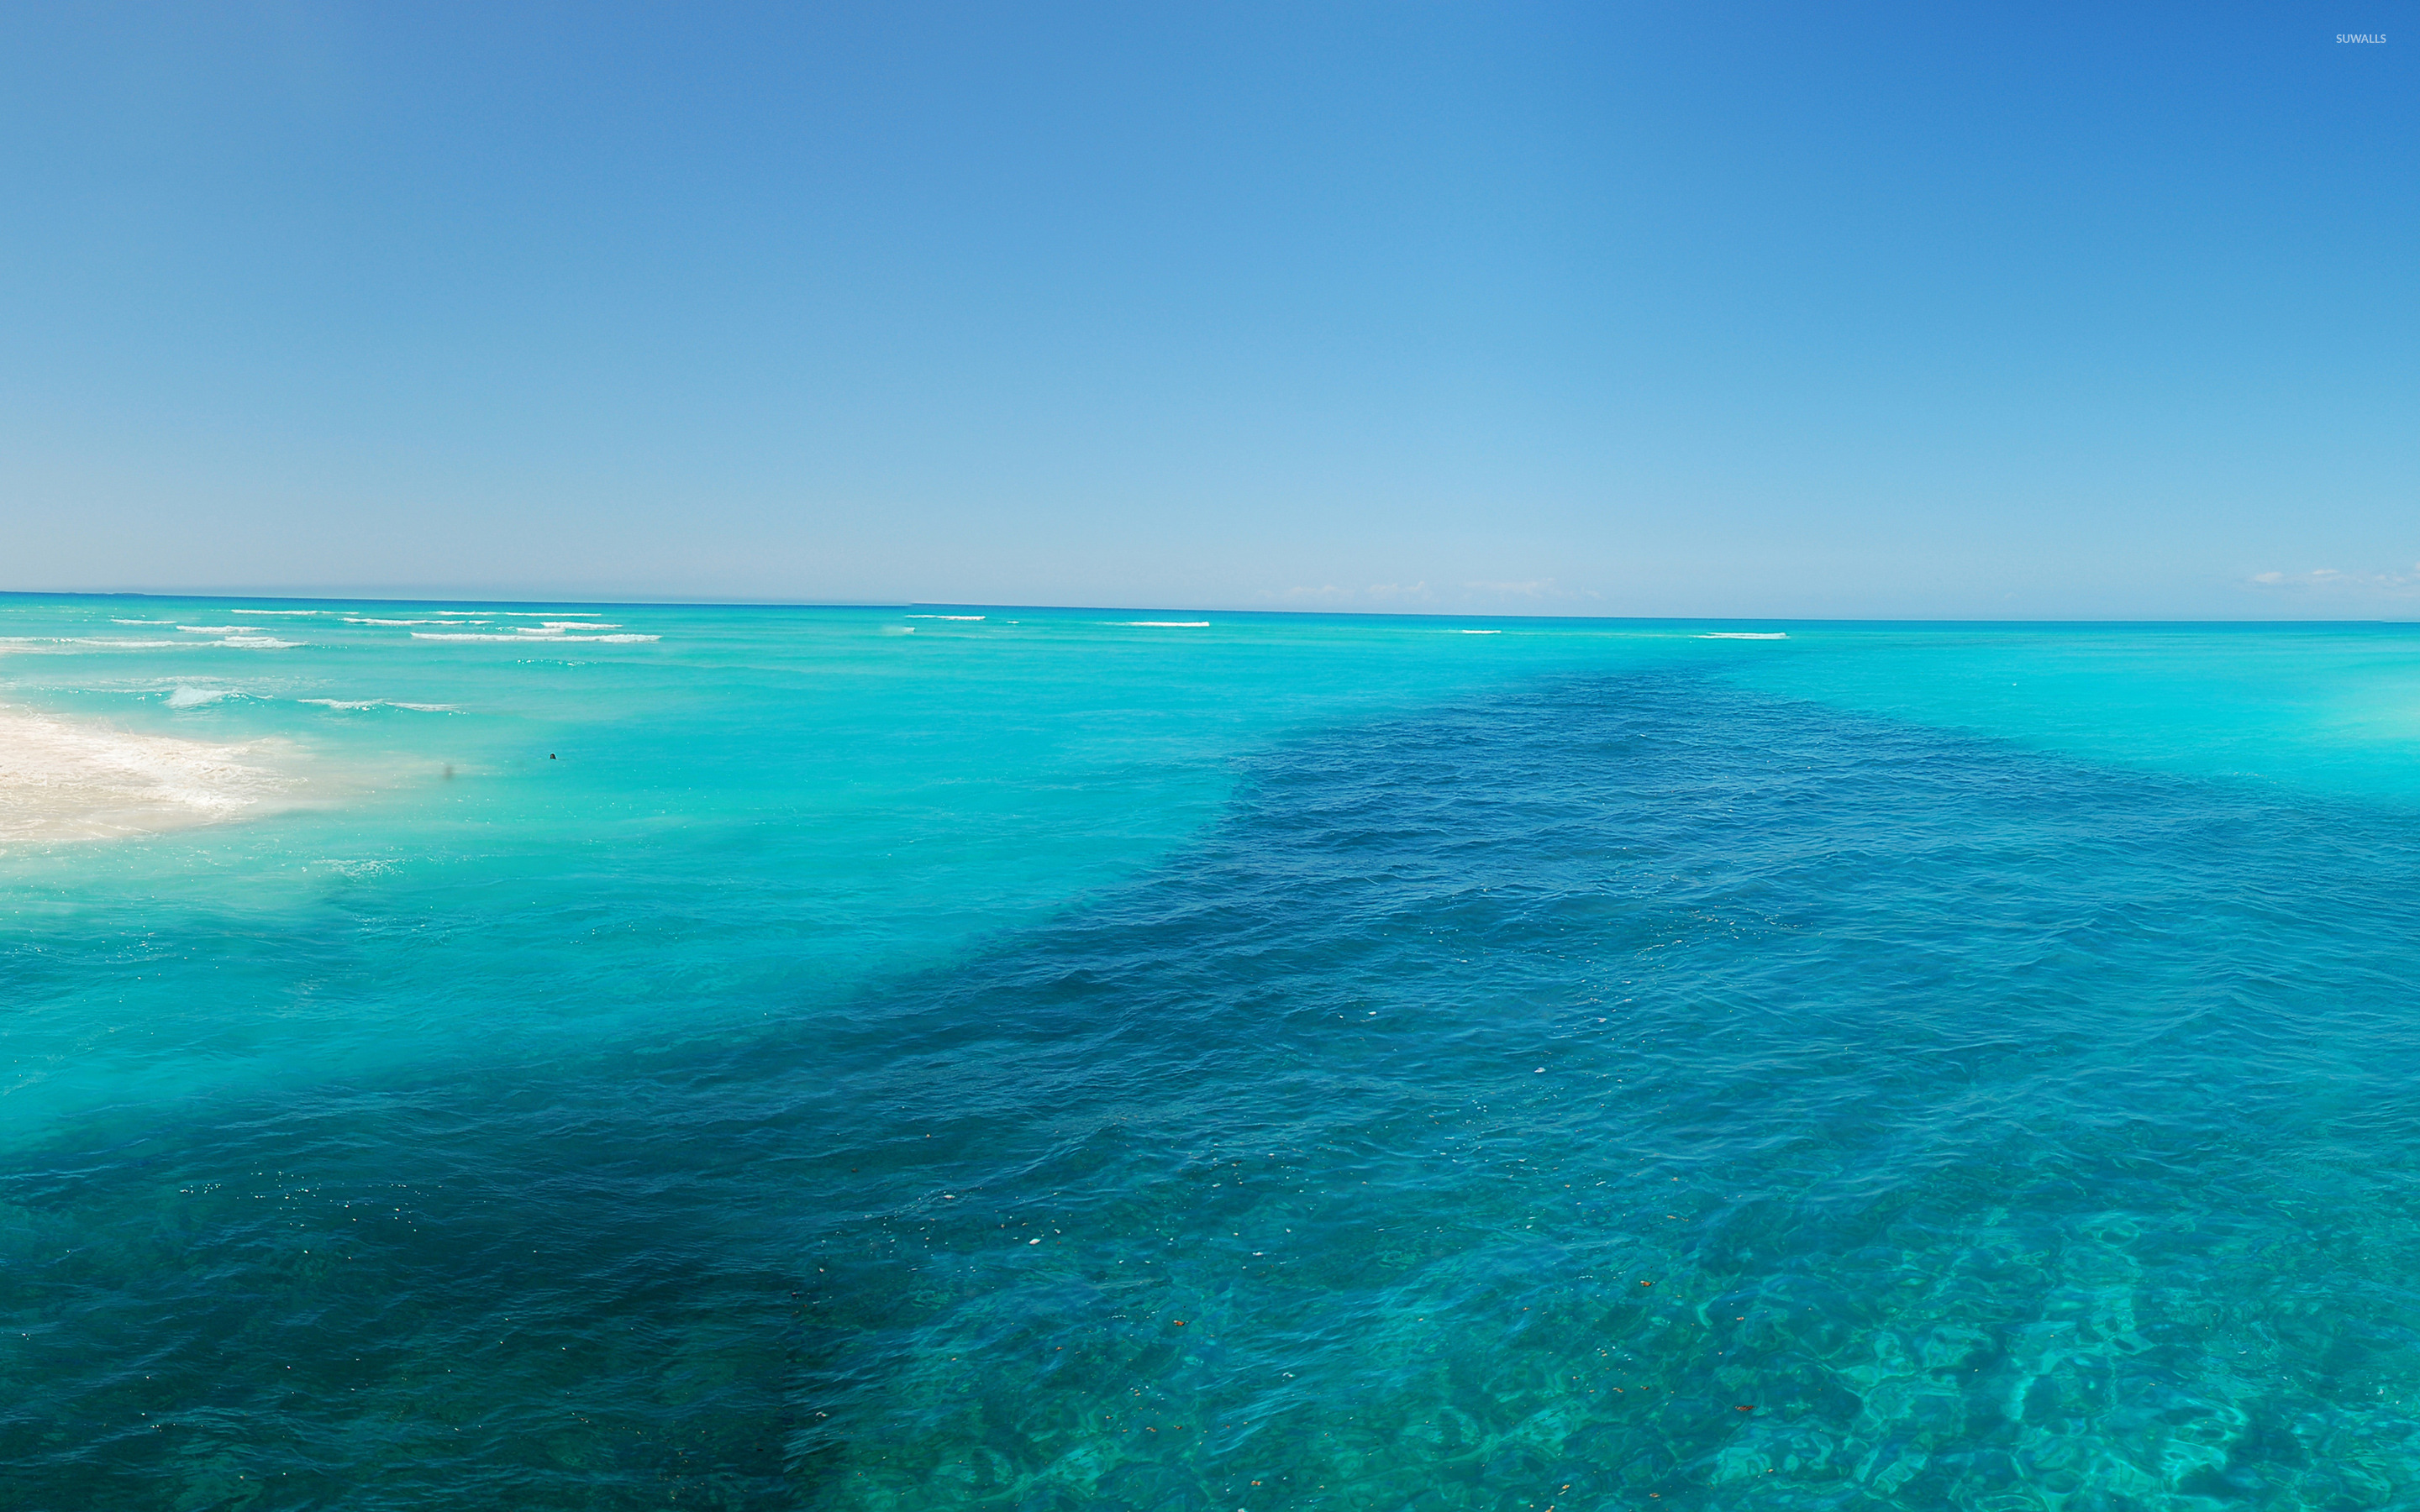 Turquoise sea wallpaper - Beach wallpapers - #31076